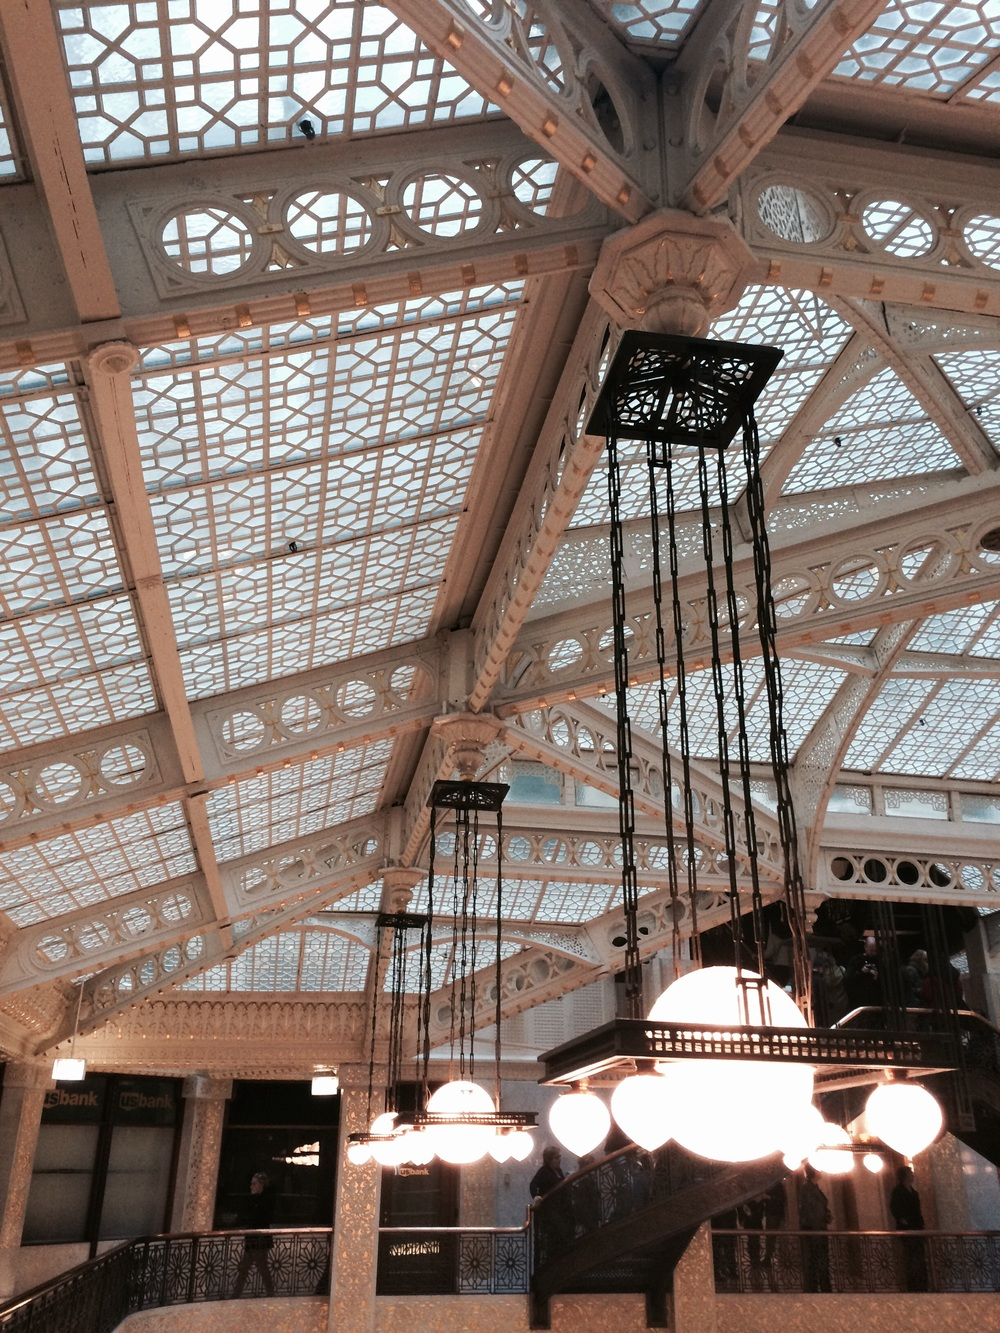 The Rookery, downtown.